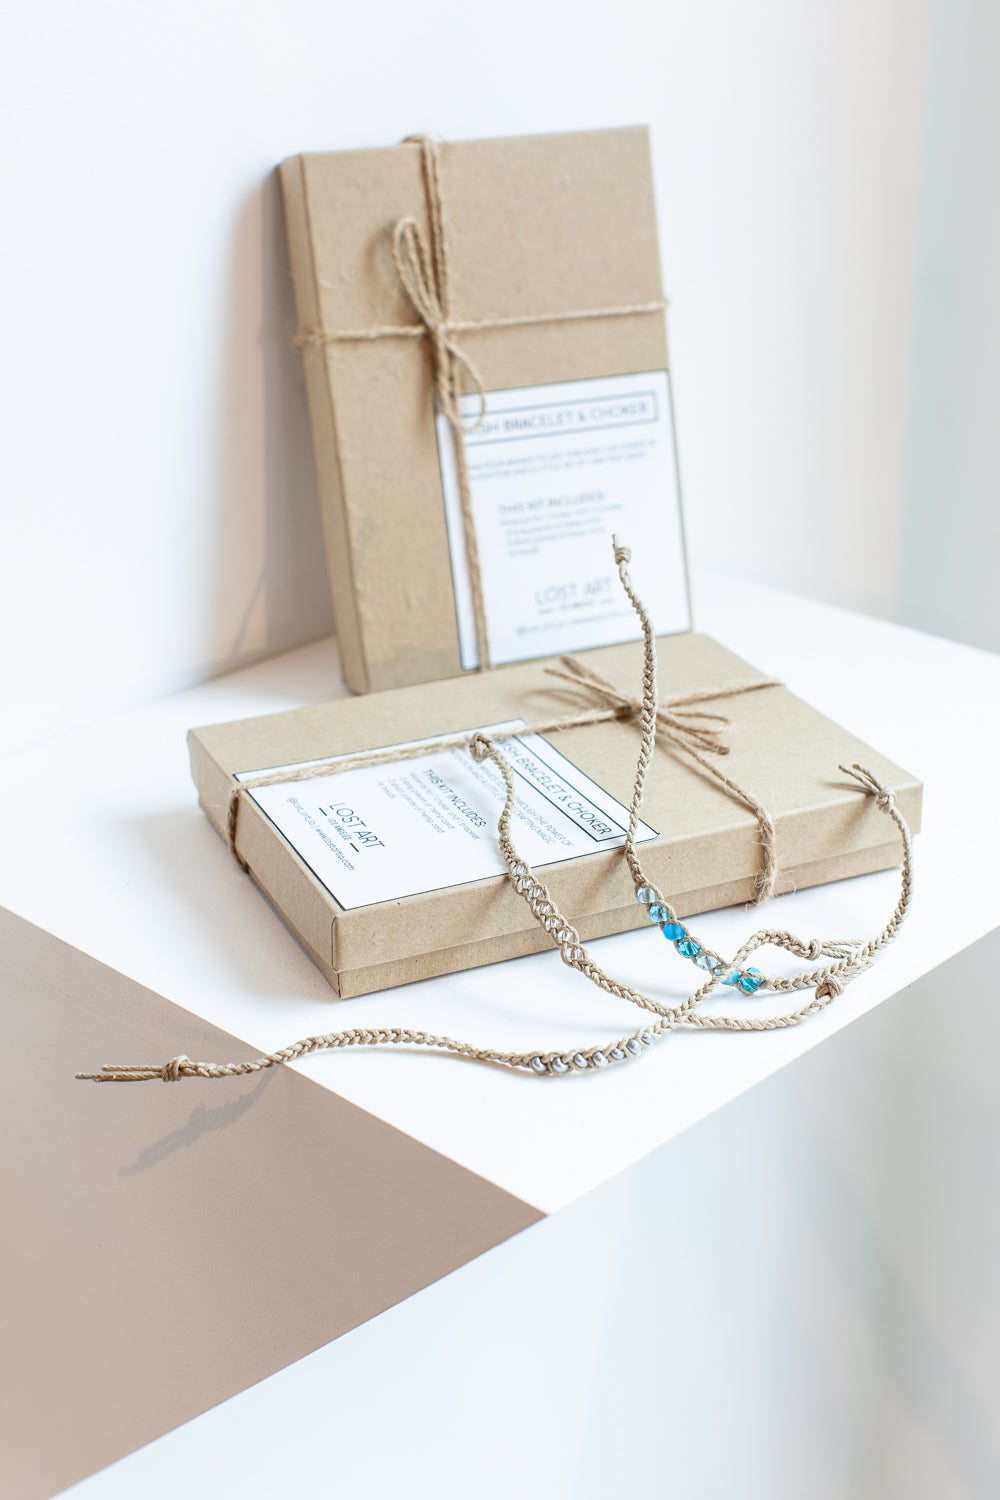 Wish Bracelet & Choker Kit